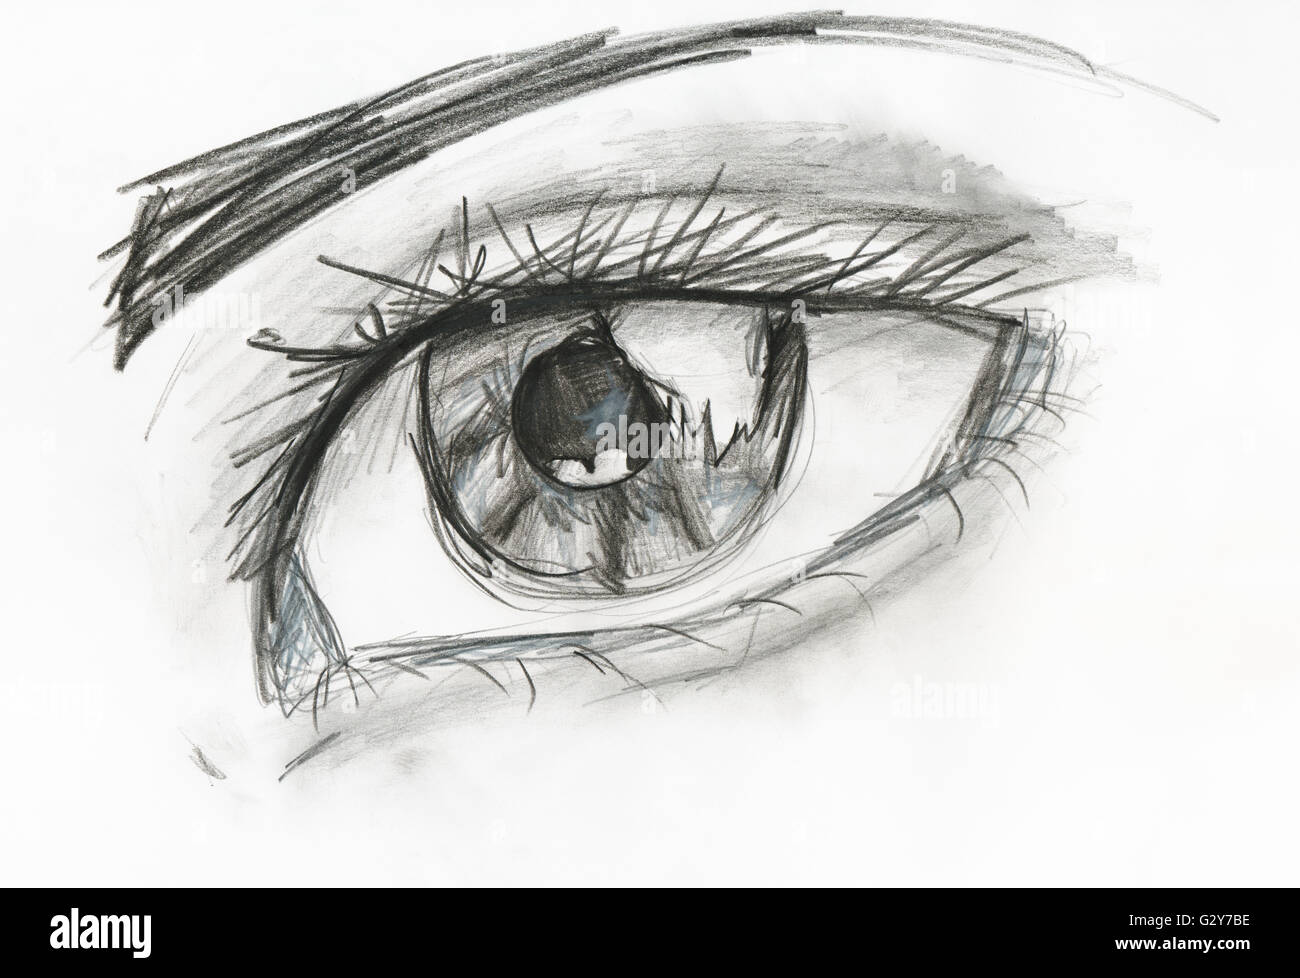 Childs drawing black and white picture of human eye close up hand drawing by pencil